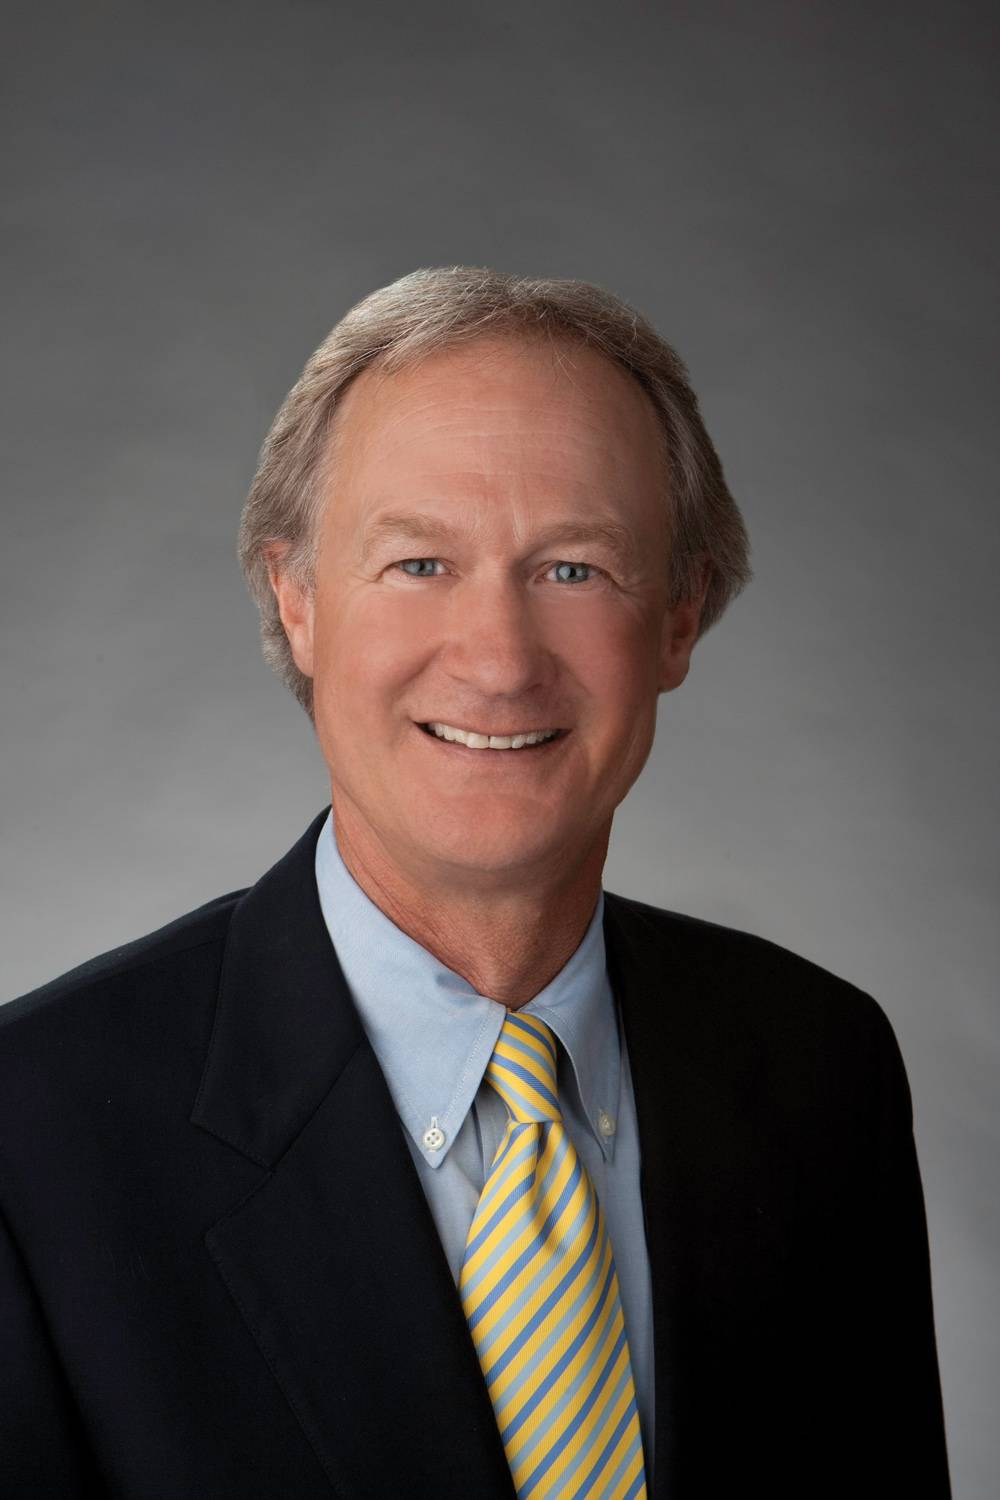 Chafee Headshot Large WEB.jpg